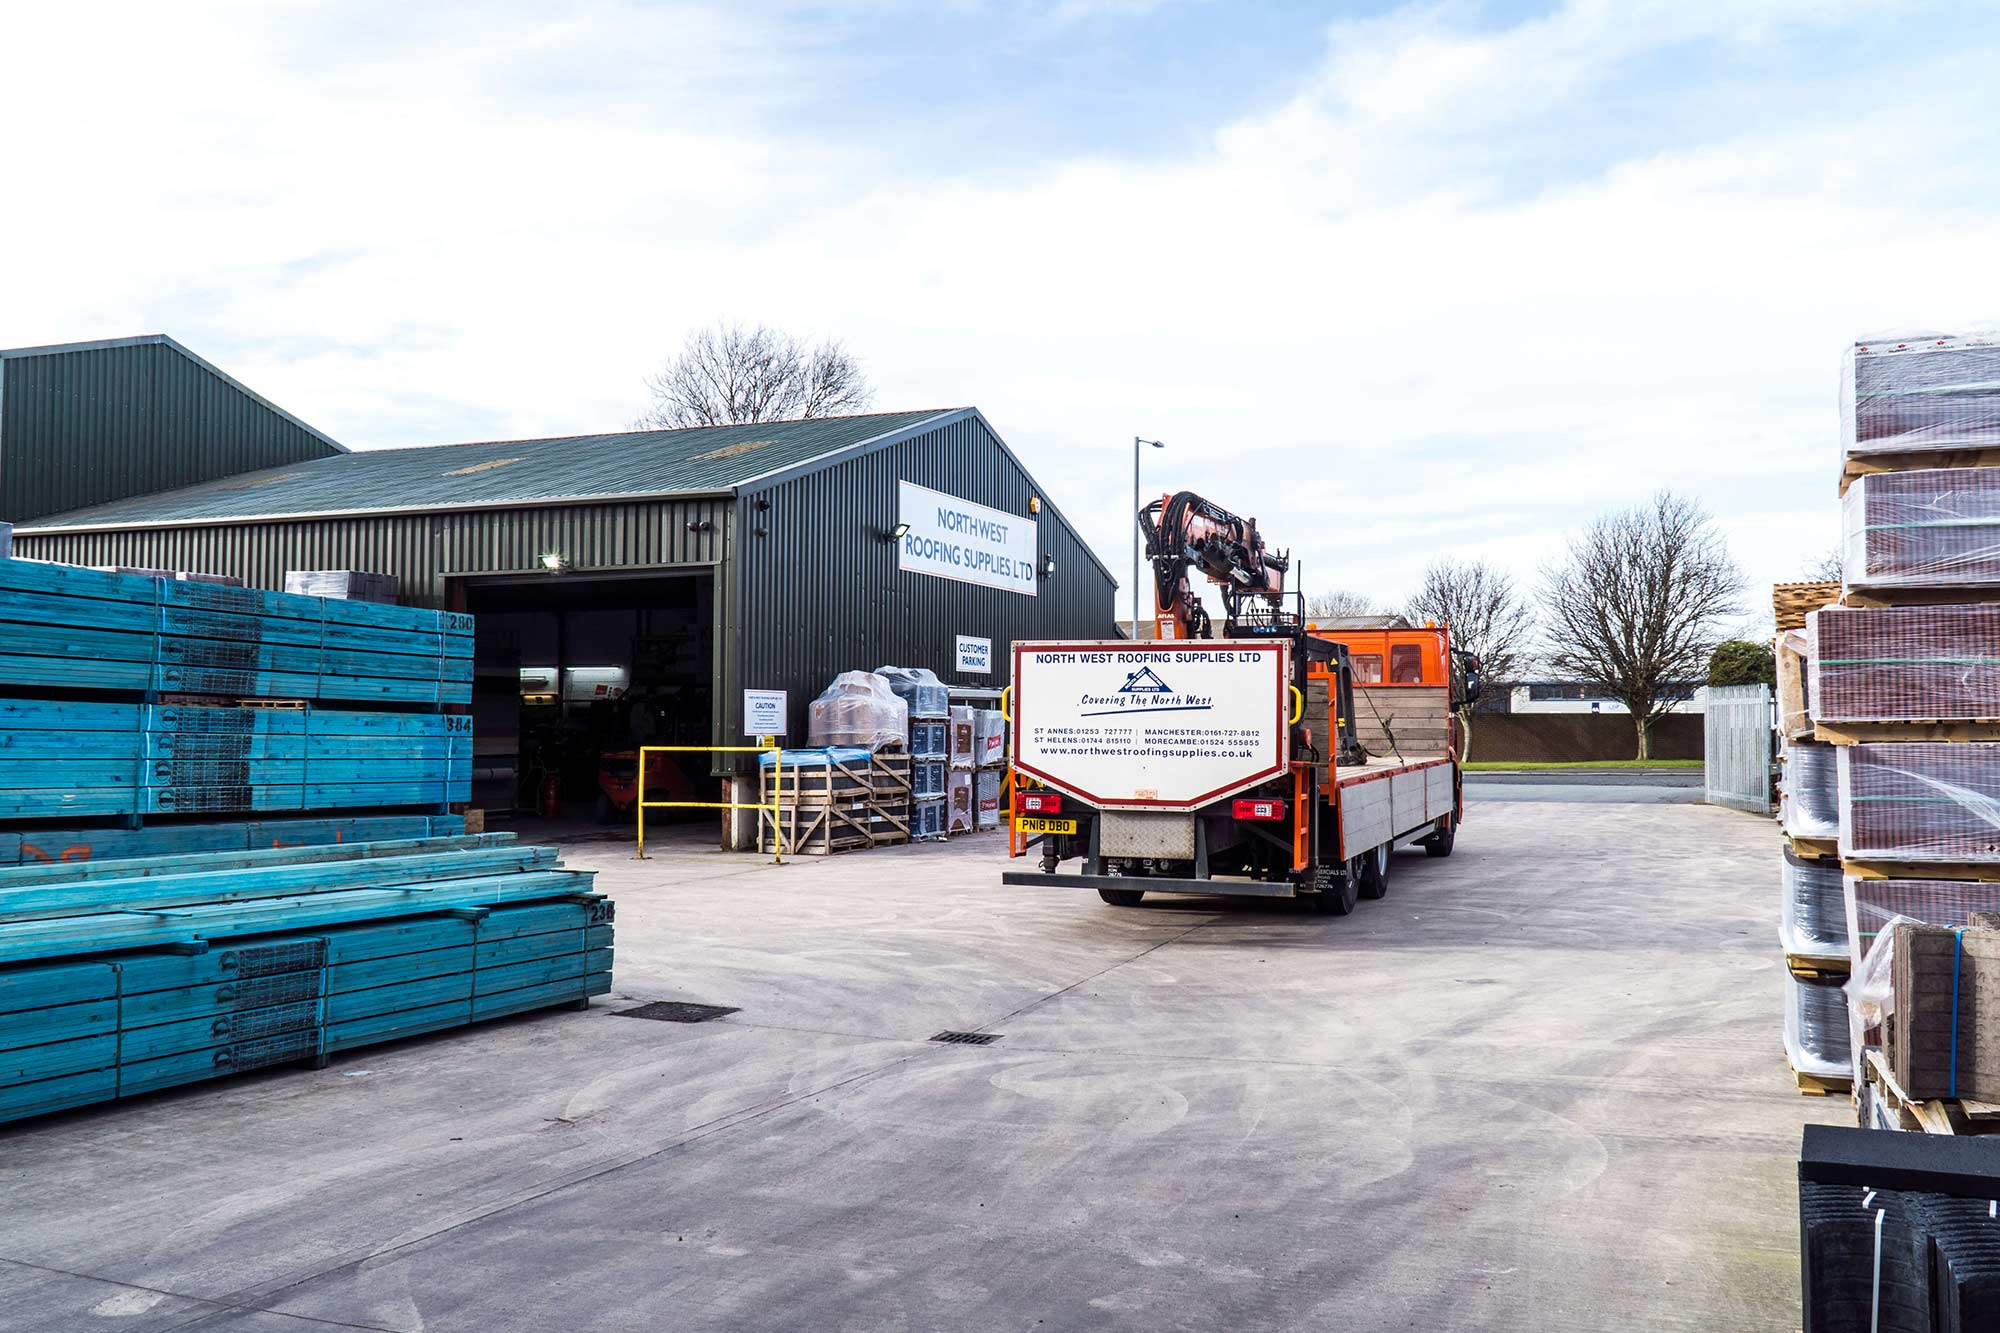 News North West Roofing Supplies Roofing Materials North West Roofing Supplies Roofing Merchants